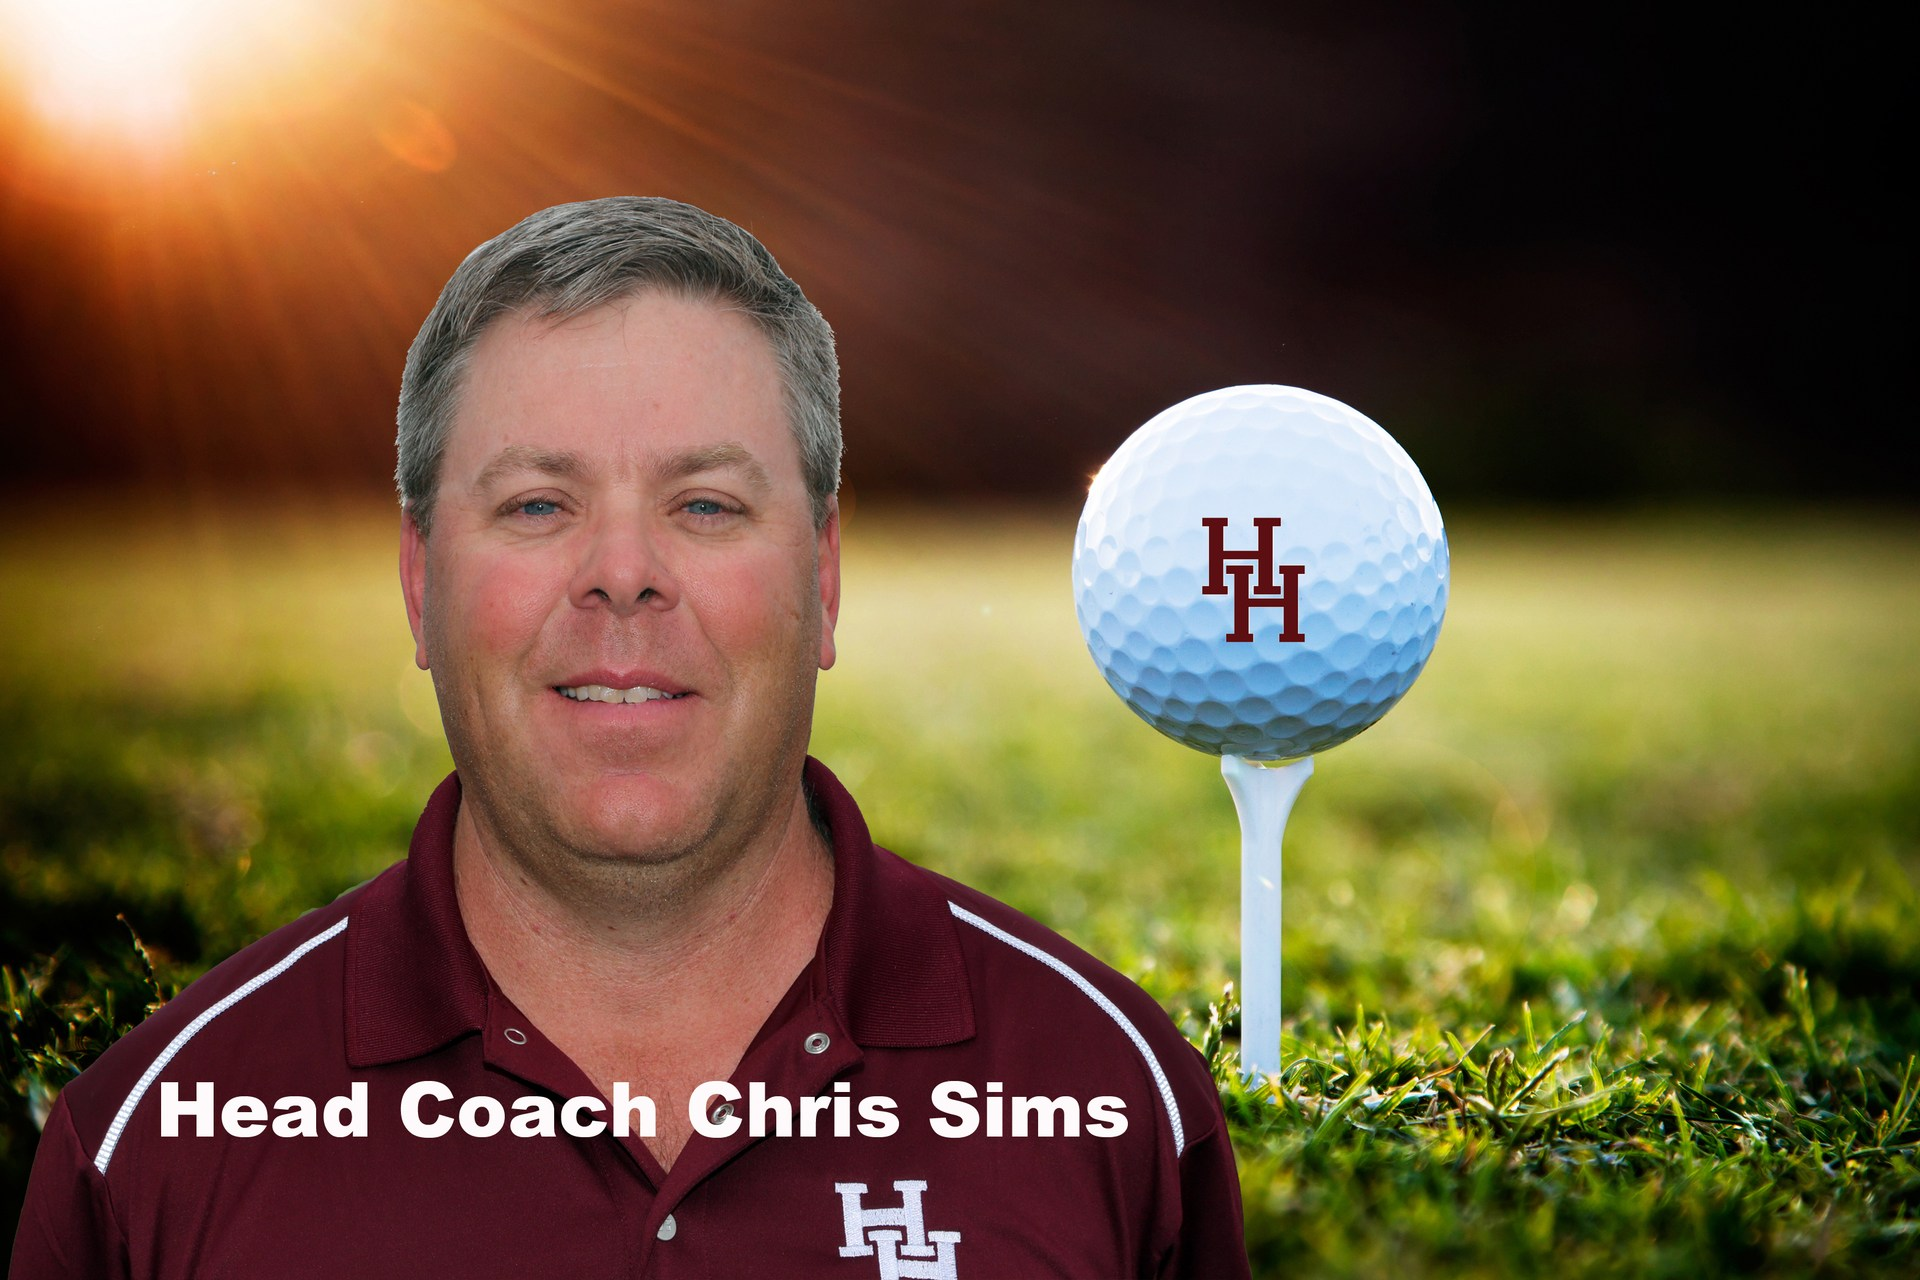 Head Coach Chris Sims